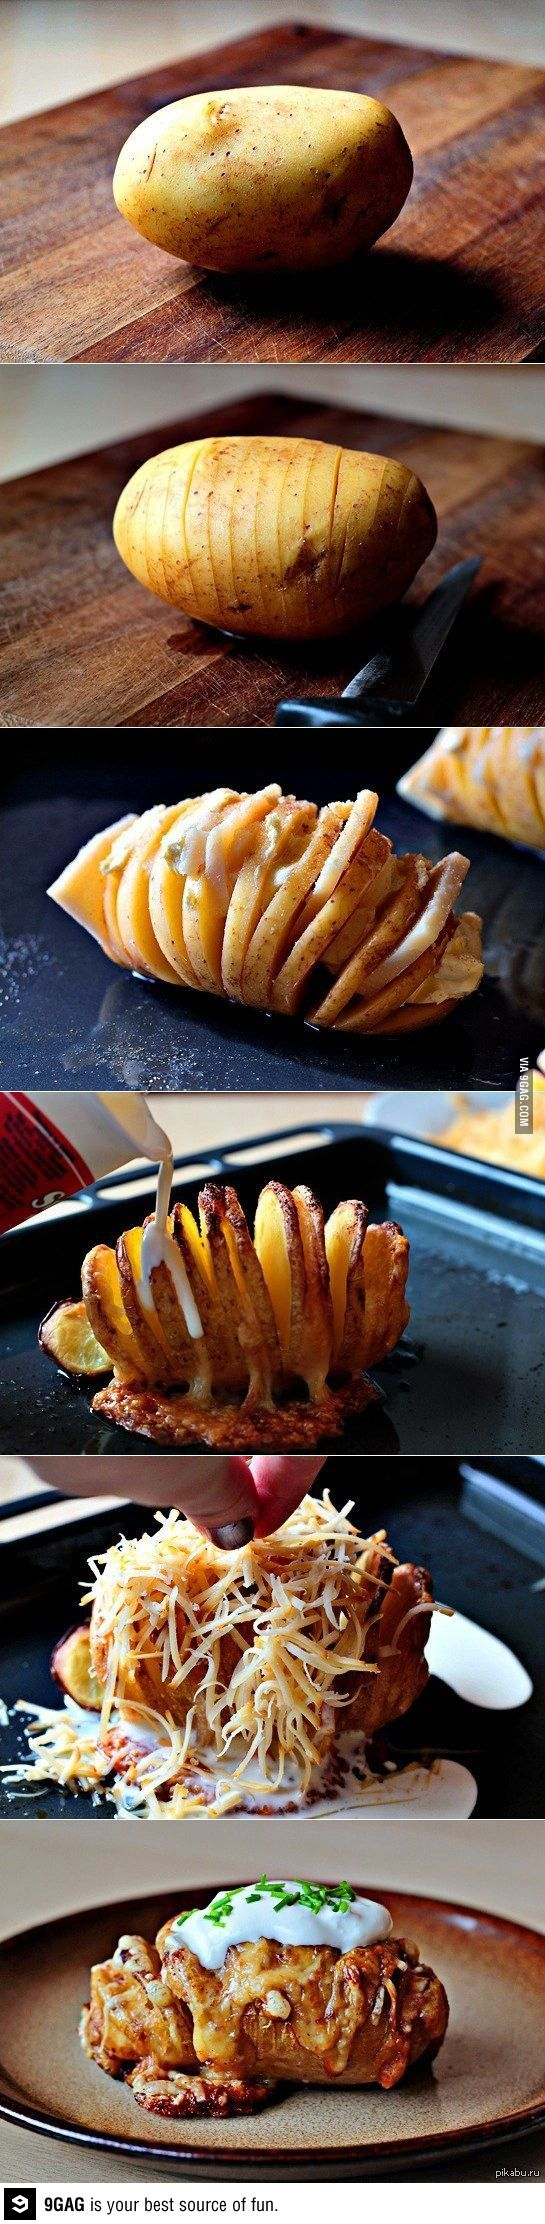 The perfect baked potato. Got to try this potatoes and they are sooooo good!